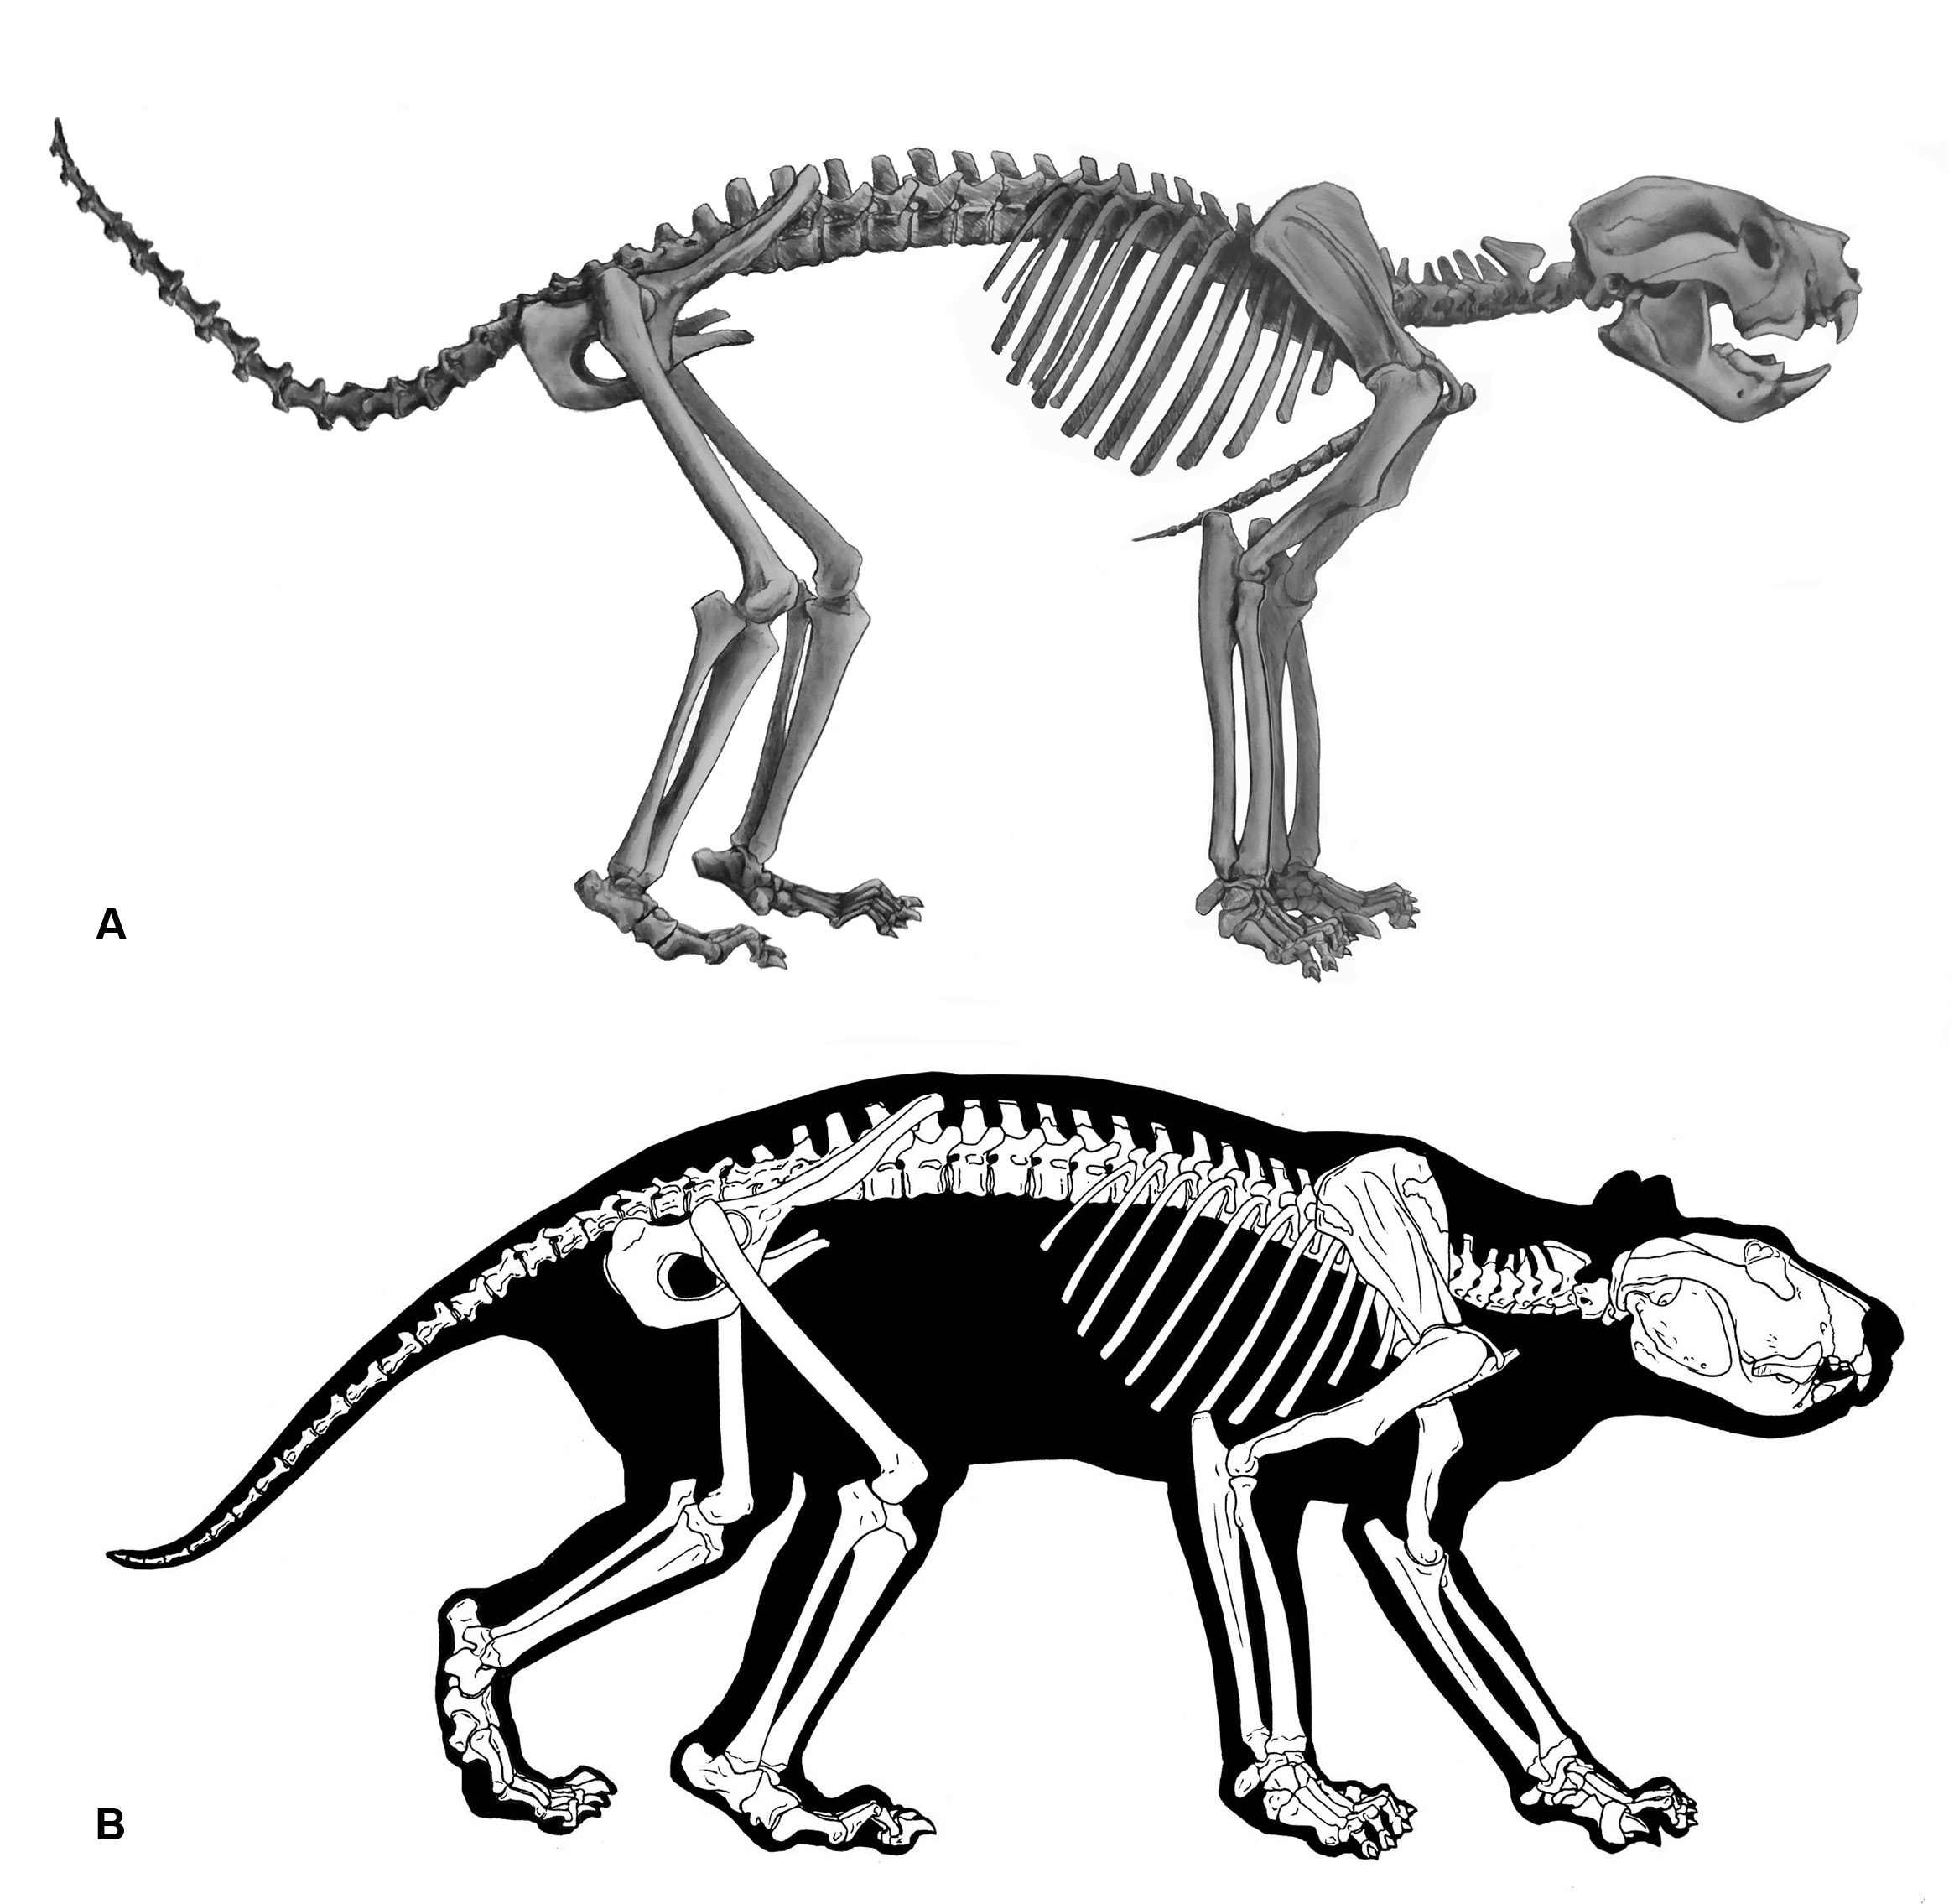 Two skeletons showing tail erect.